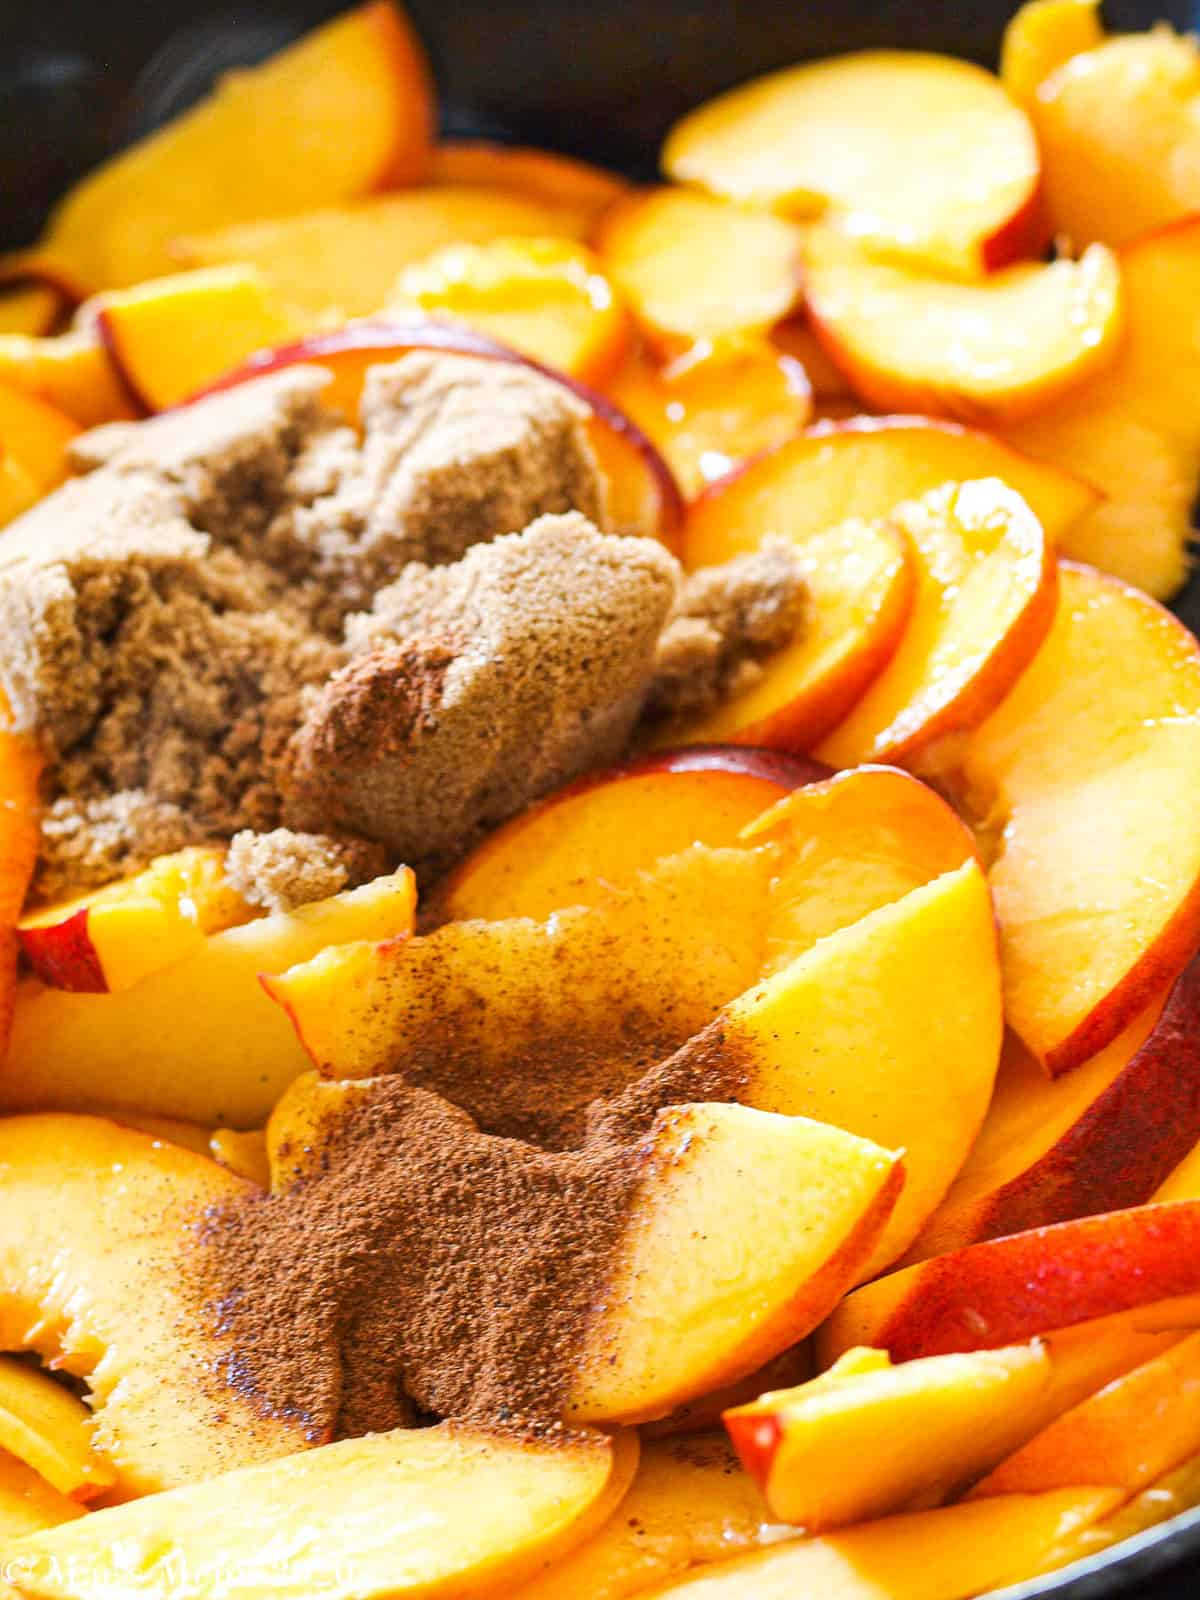 brown sugar and spices on top of peaches